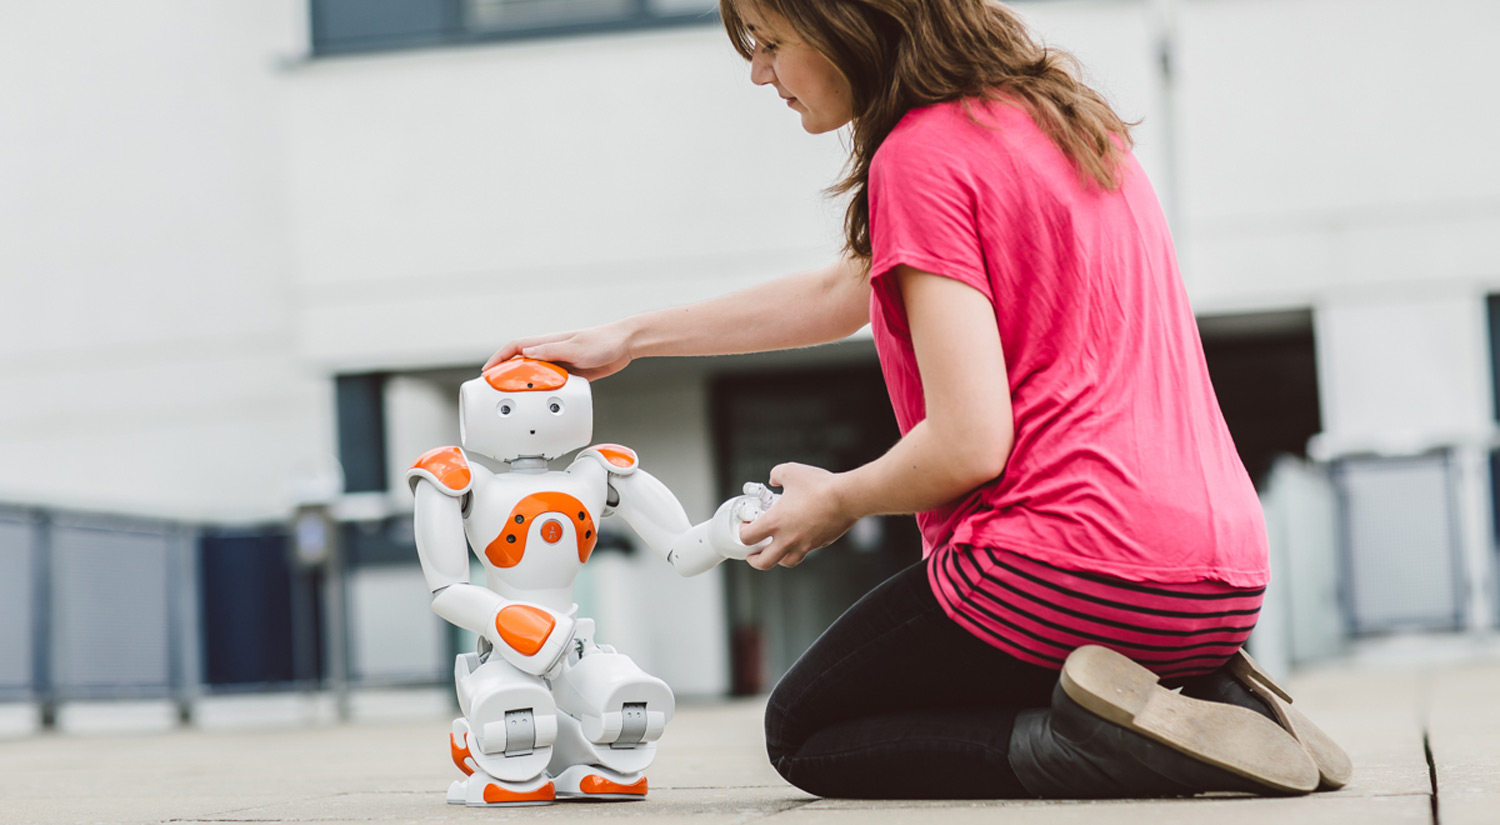 Image of a female student testing a Nao robot outside the computer science building